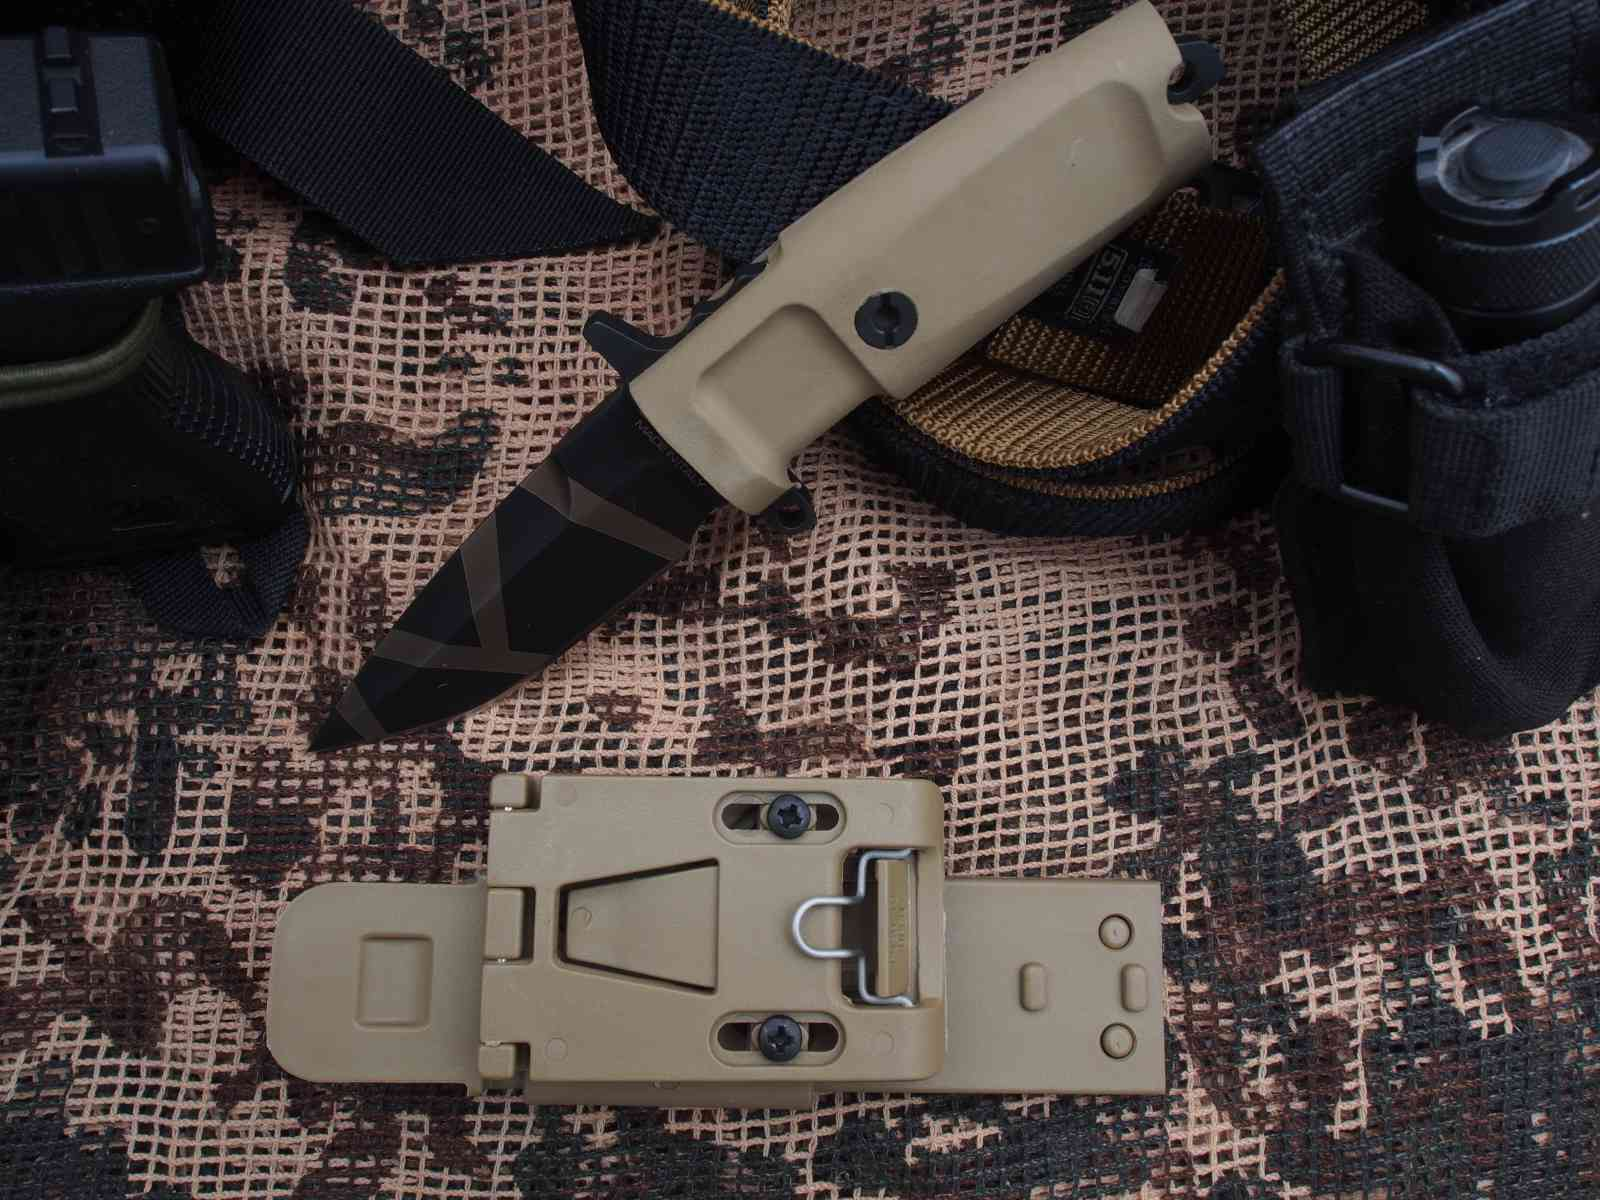 Extrema Ratio Col Moschin Compact Desert Warfare 7